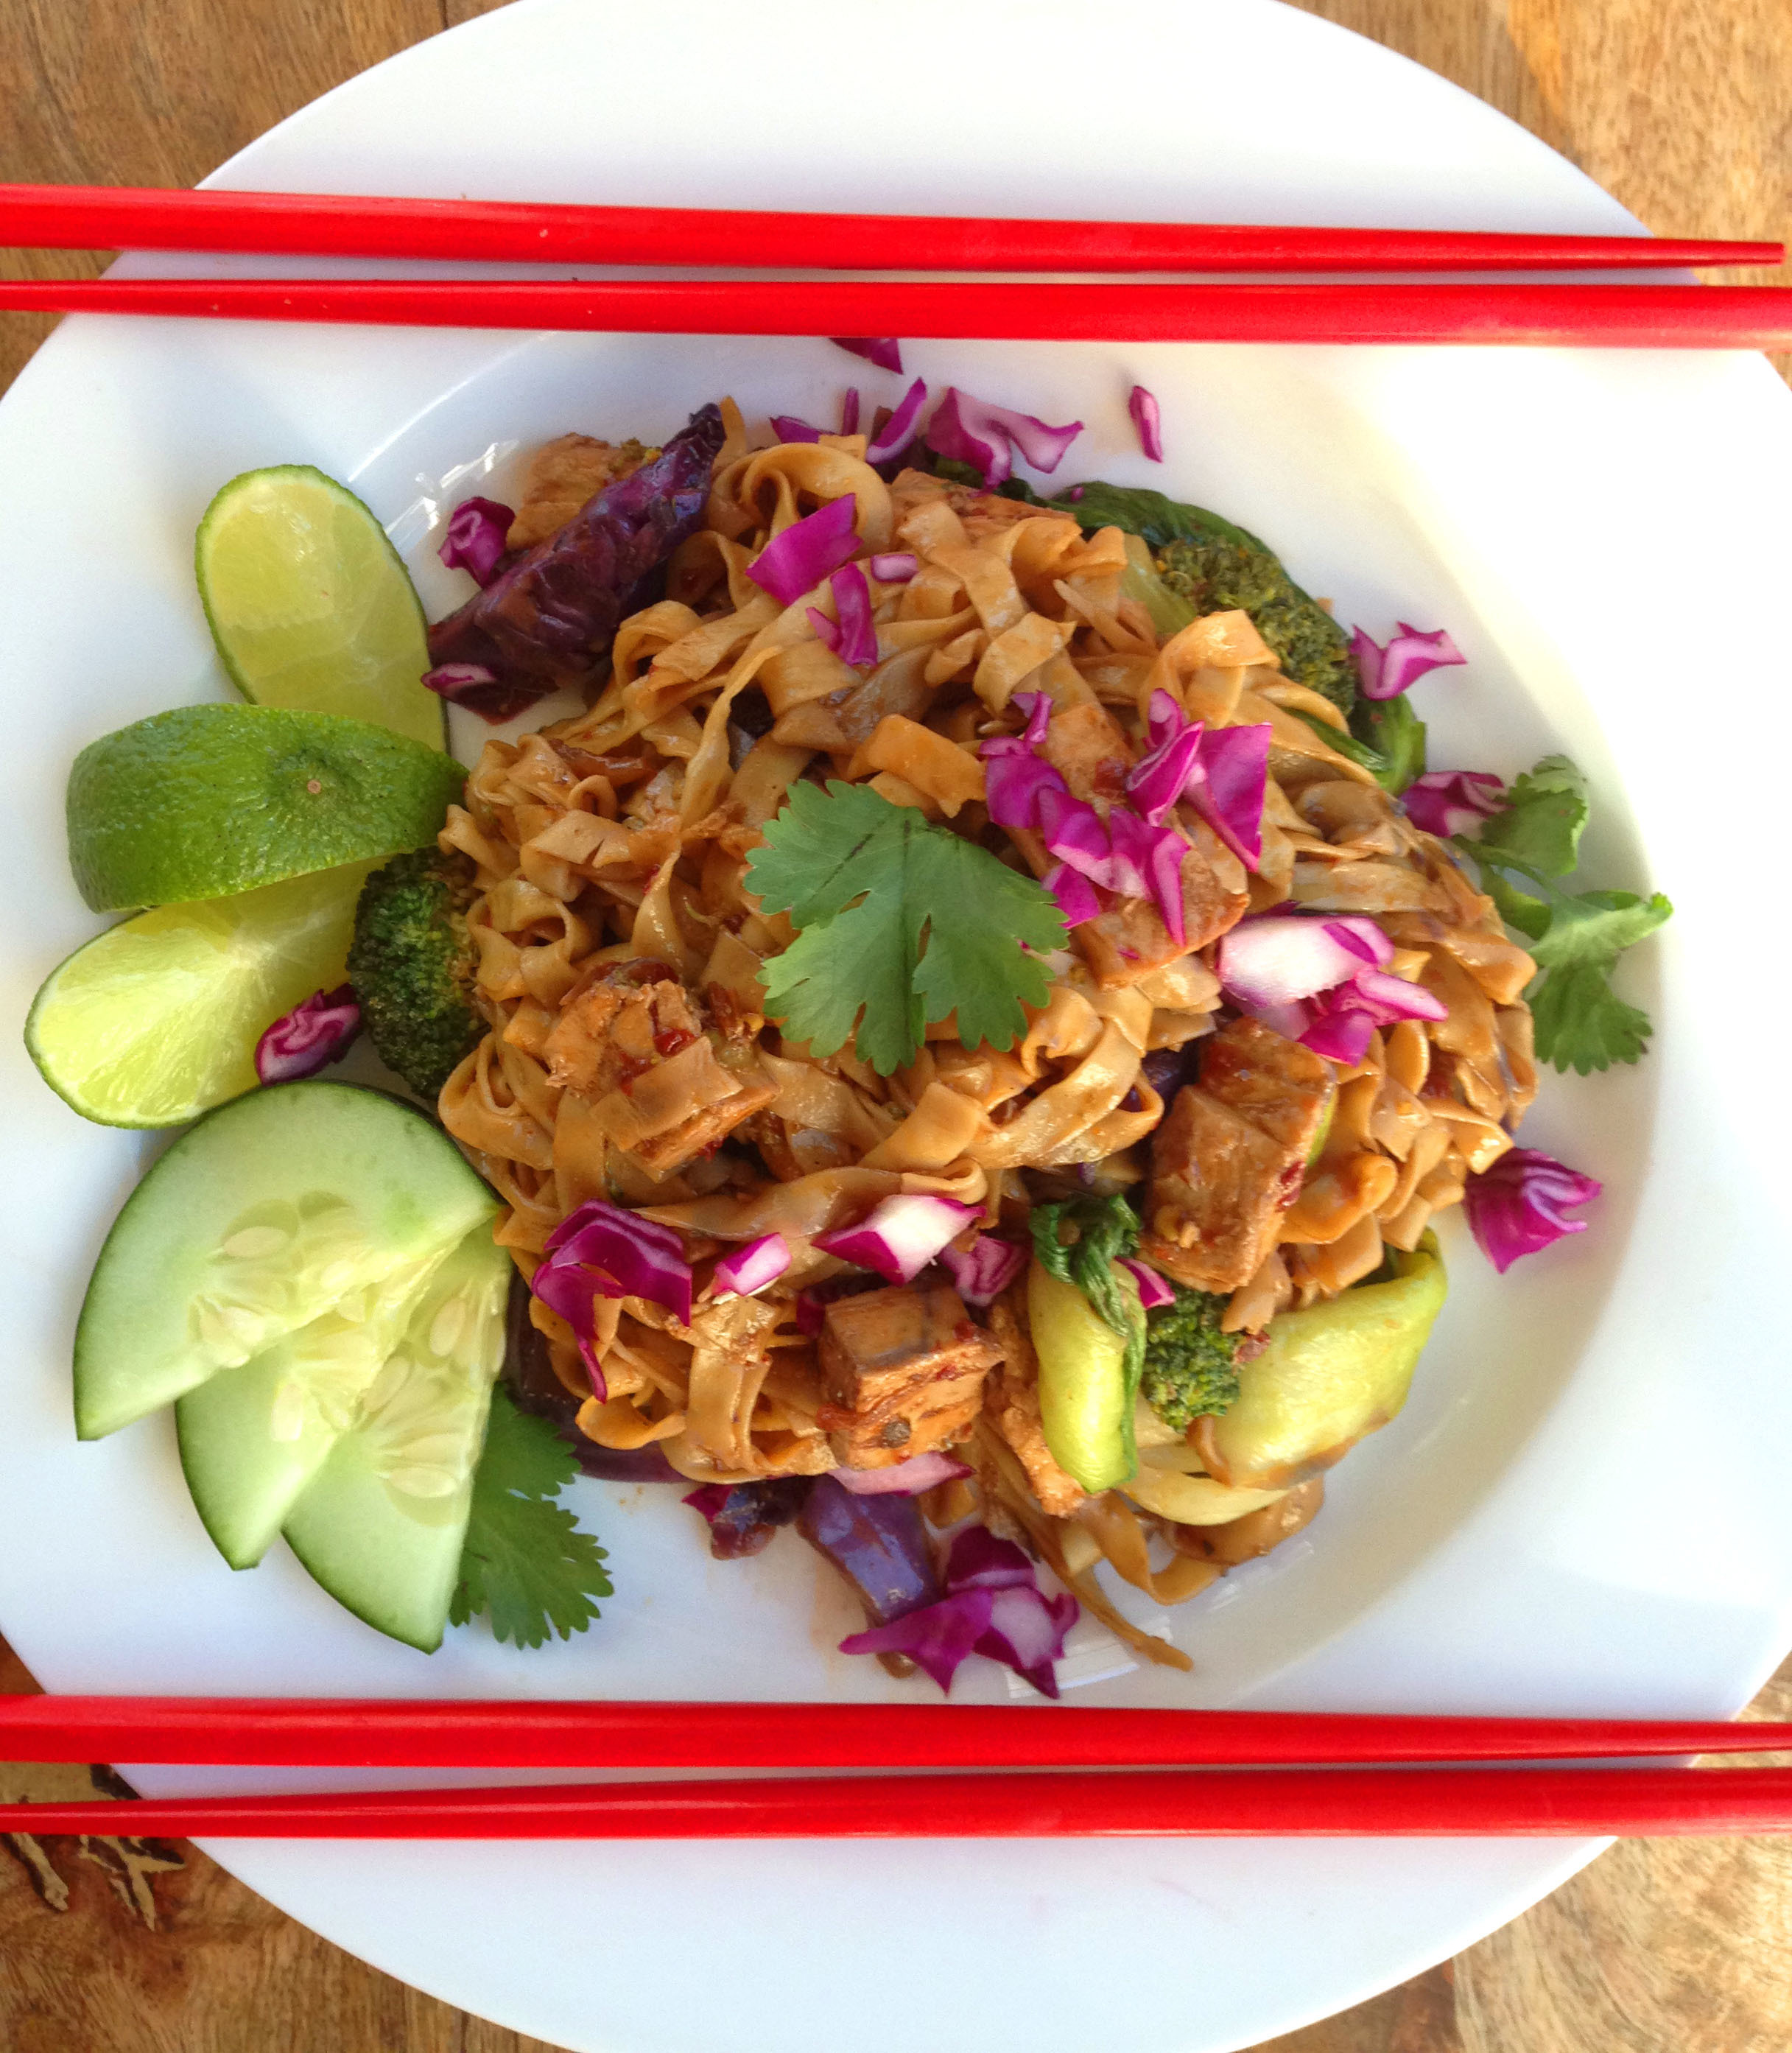 Spicy Indonesian Street Cart Noodles – Mie Goreng – with Vegan Chicken (and Crispy Shallots)